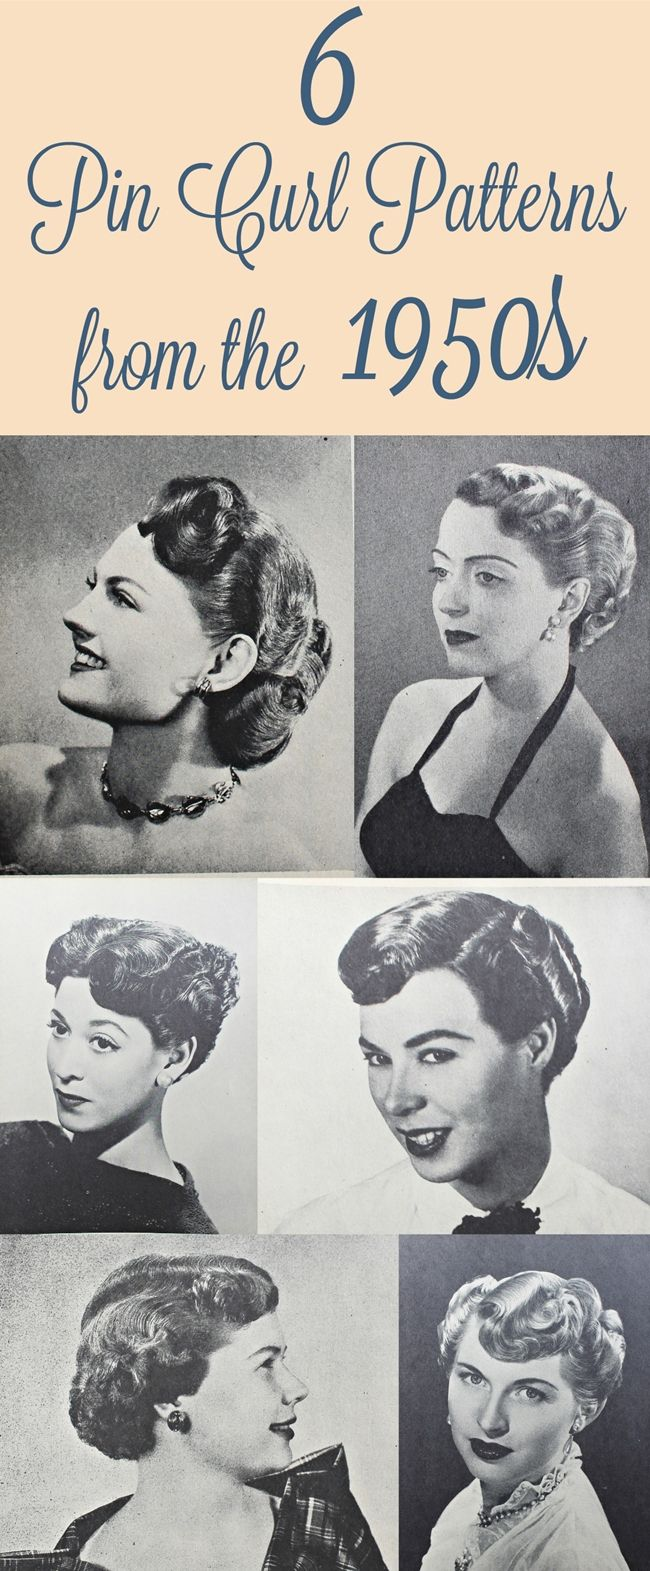 6 pin curl hair setting and styling patterns from the 1950s from Va-Voom Vintage